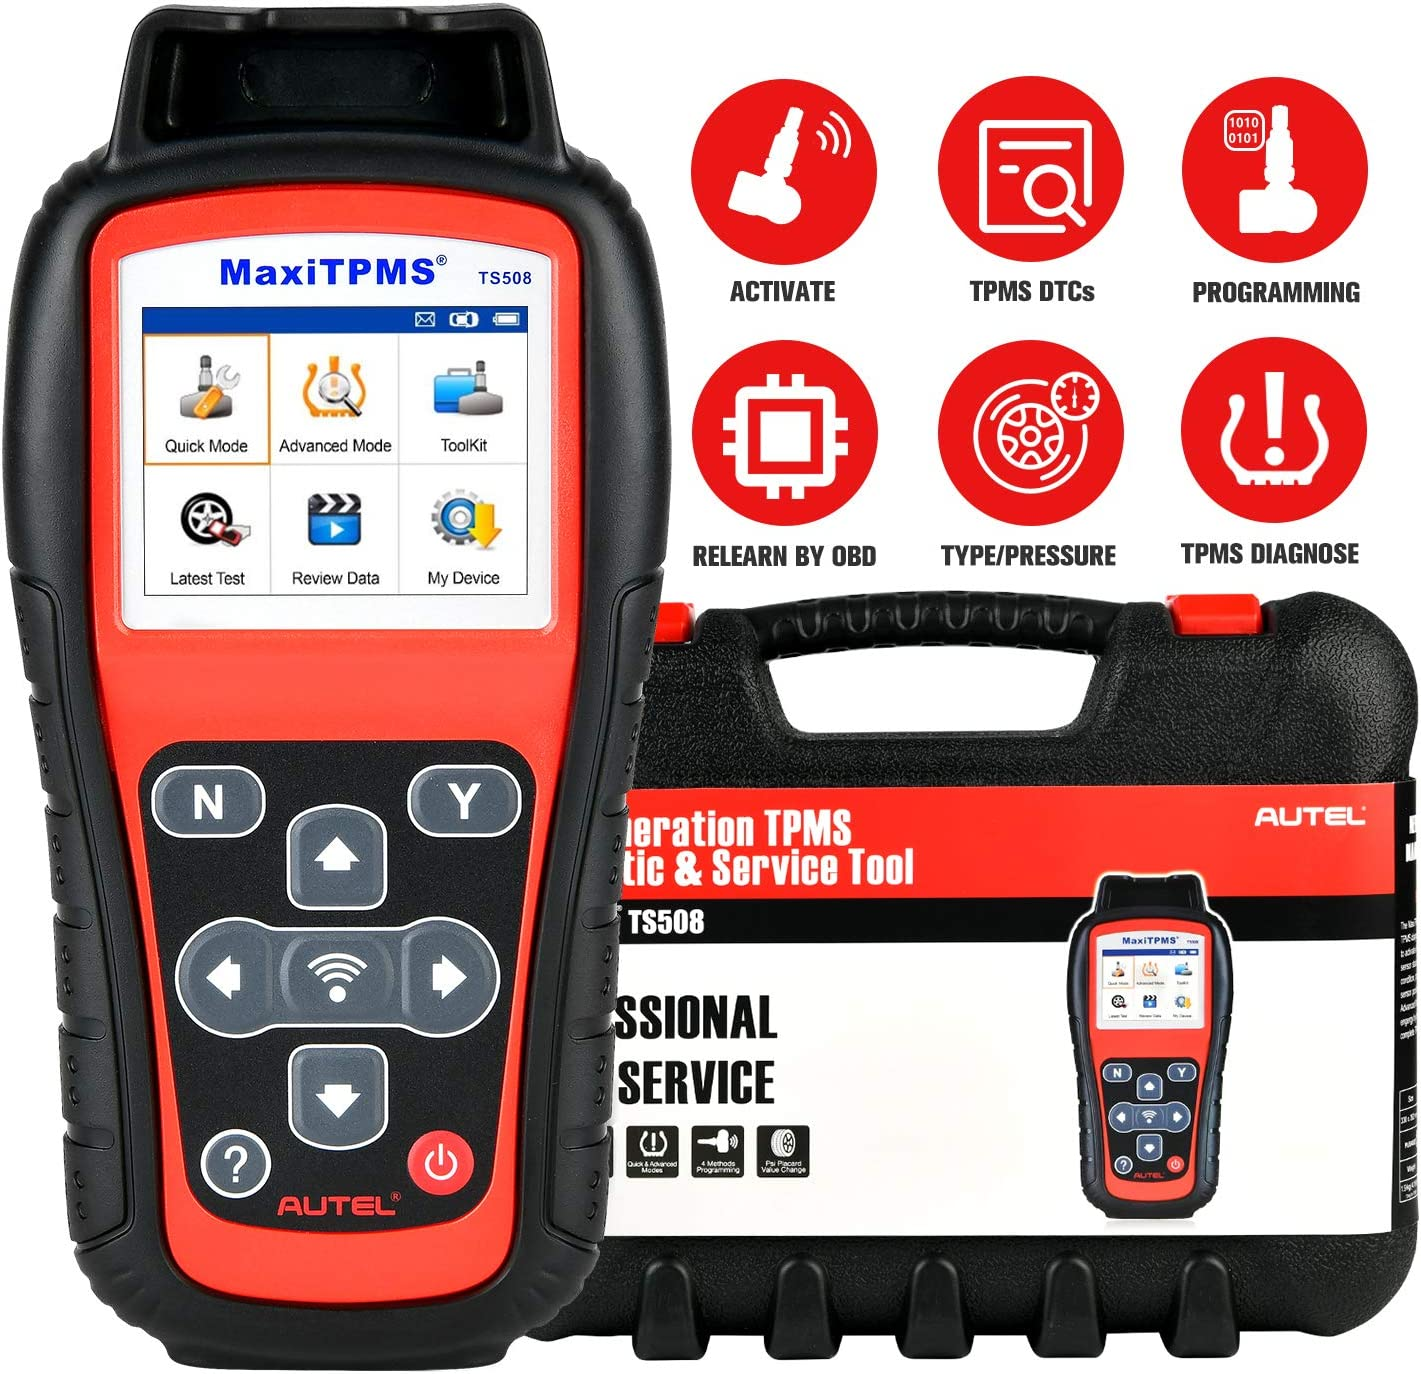 Autel TS508 TPMS Relearn Tool MaxiTPMS for TPMS Programming, TPMS Reset, Tire Type/Pressure Selection, Relearn by OBD, Read Clear TPMS DTCs, Sensor Activation, Key Fob Testing, Update Version of TS408